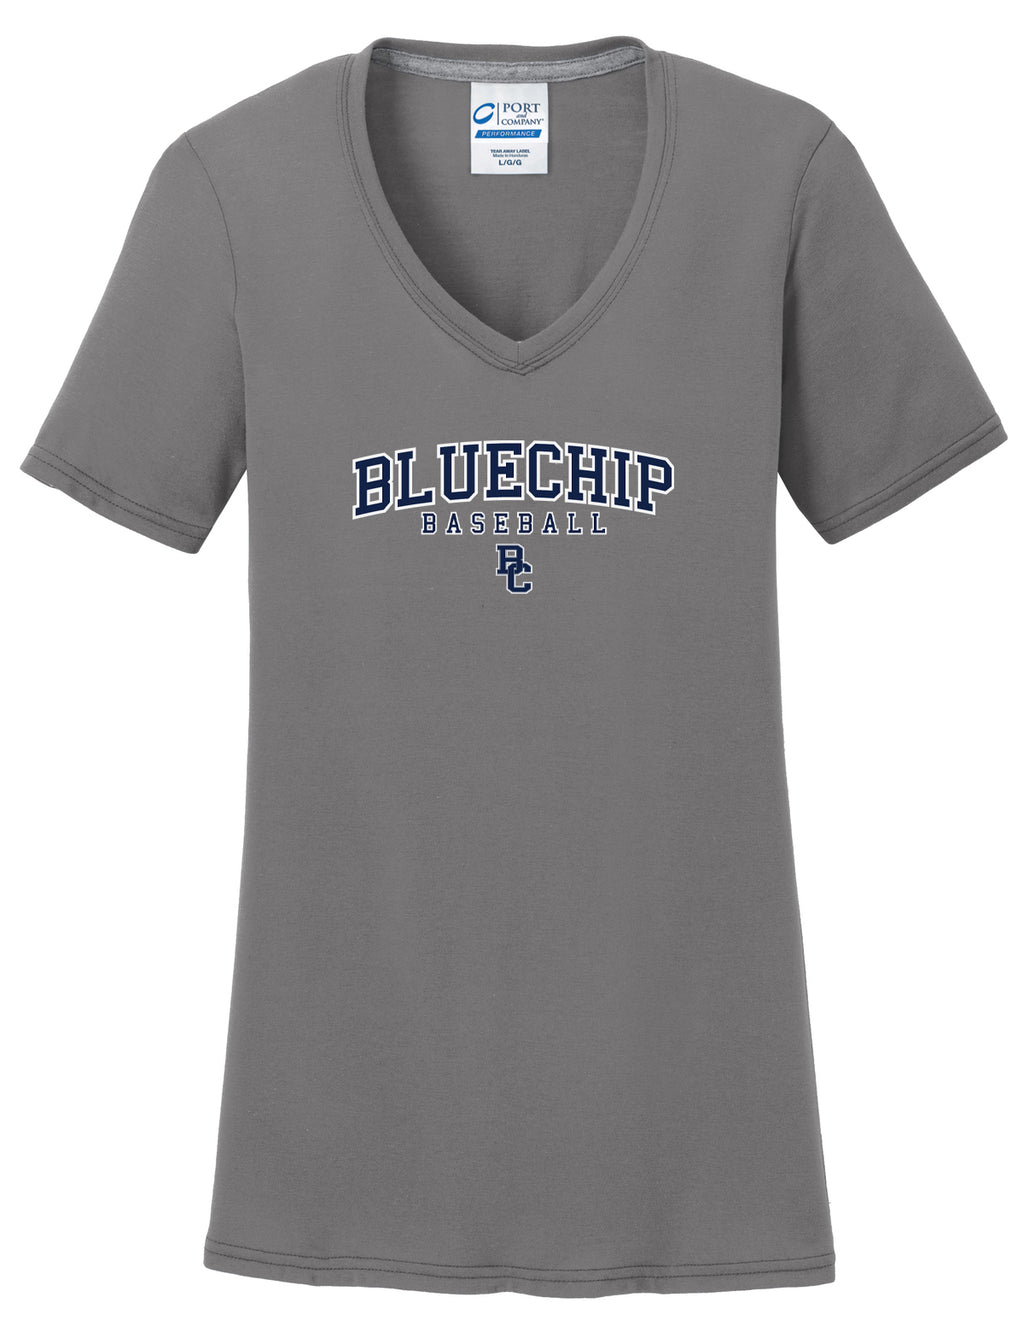 BlueChip Baseball Women's T-Shirt